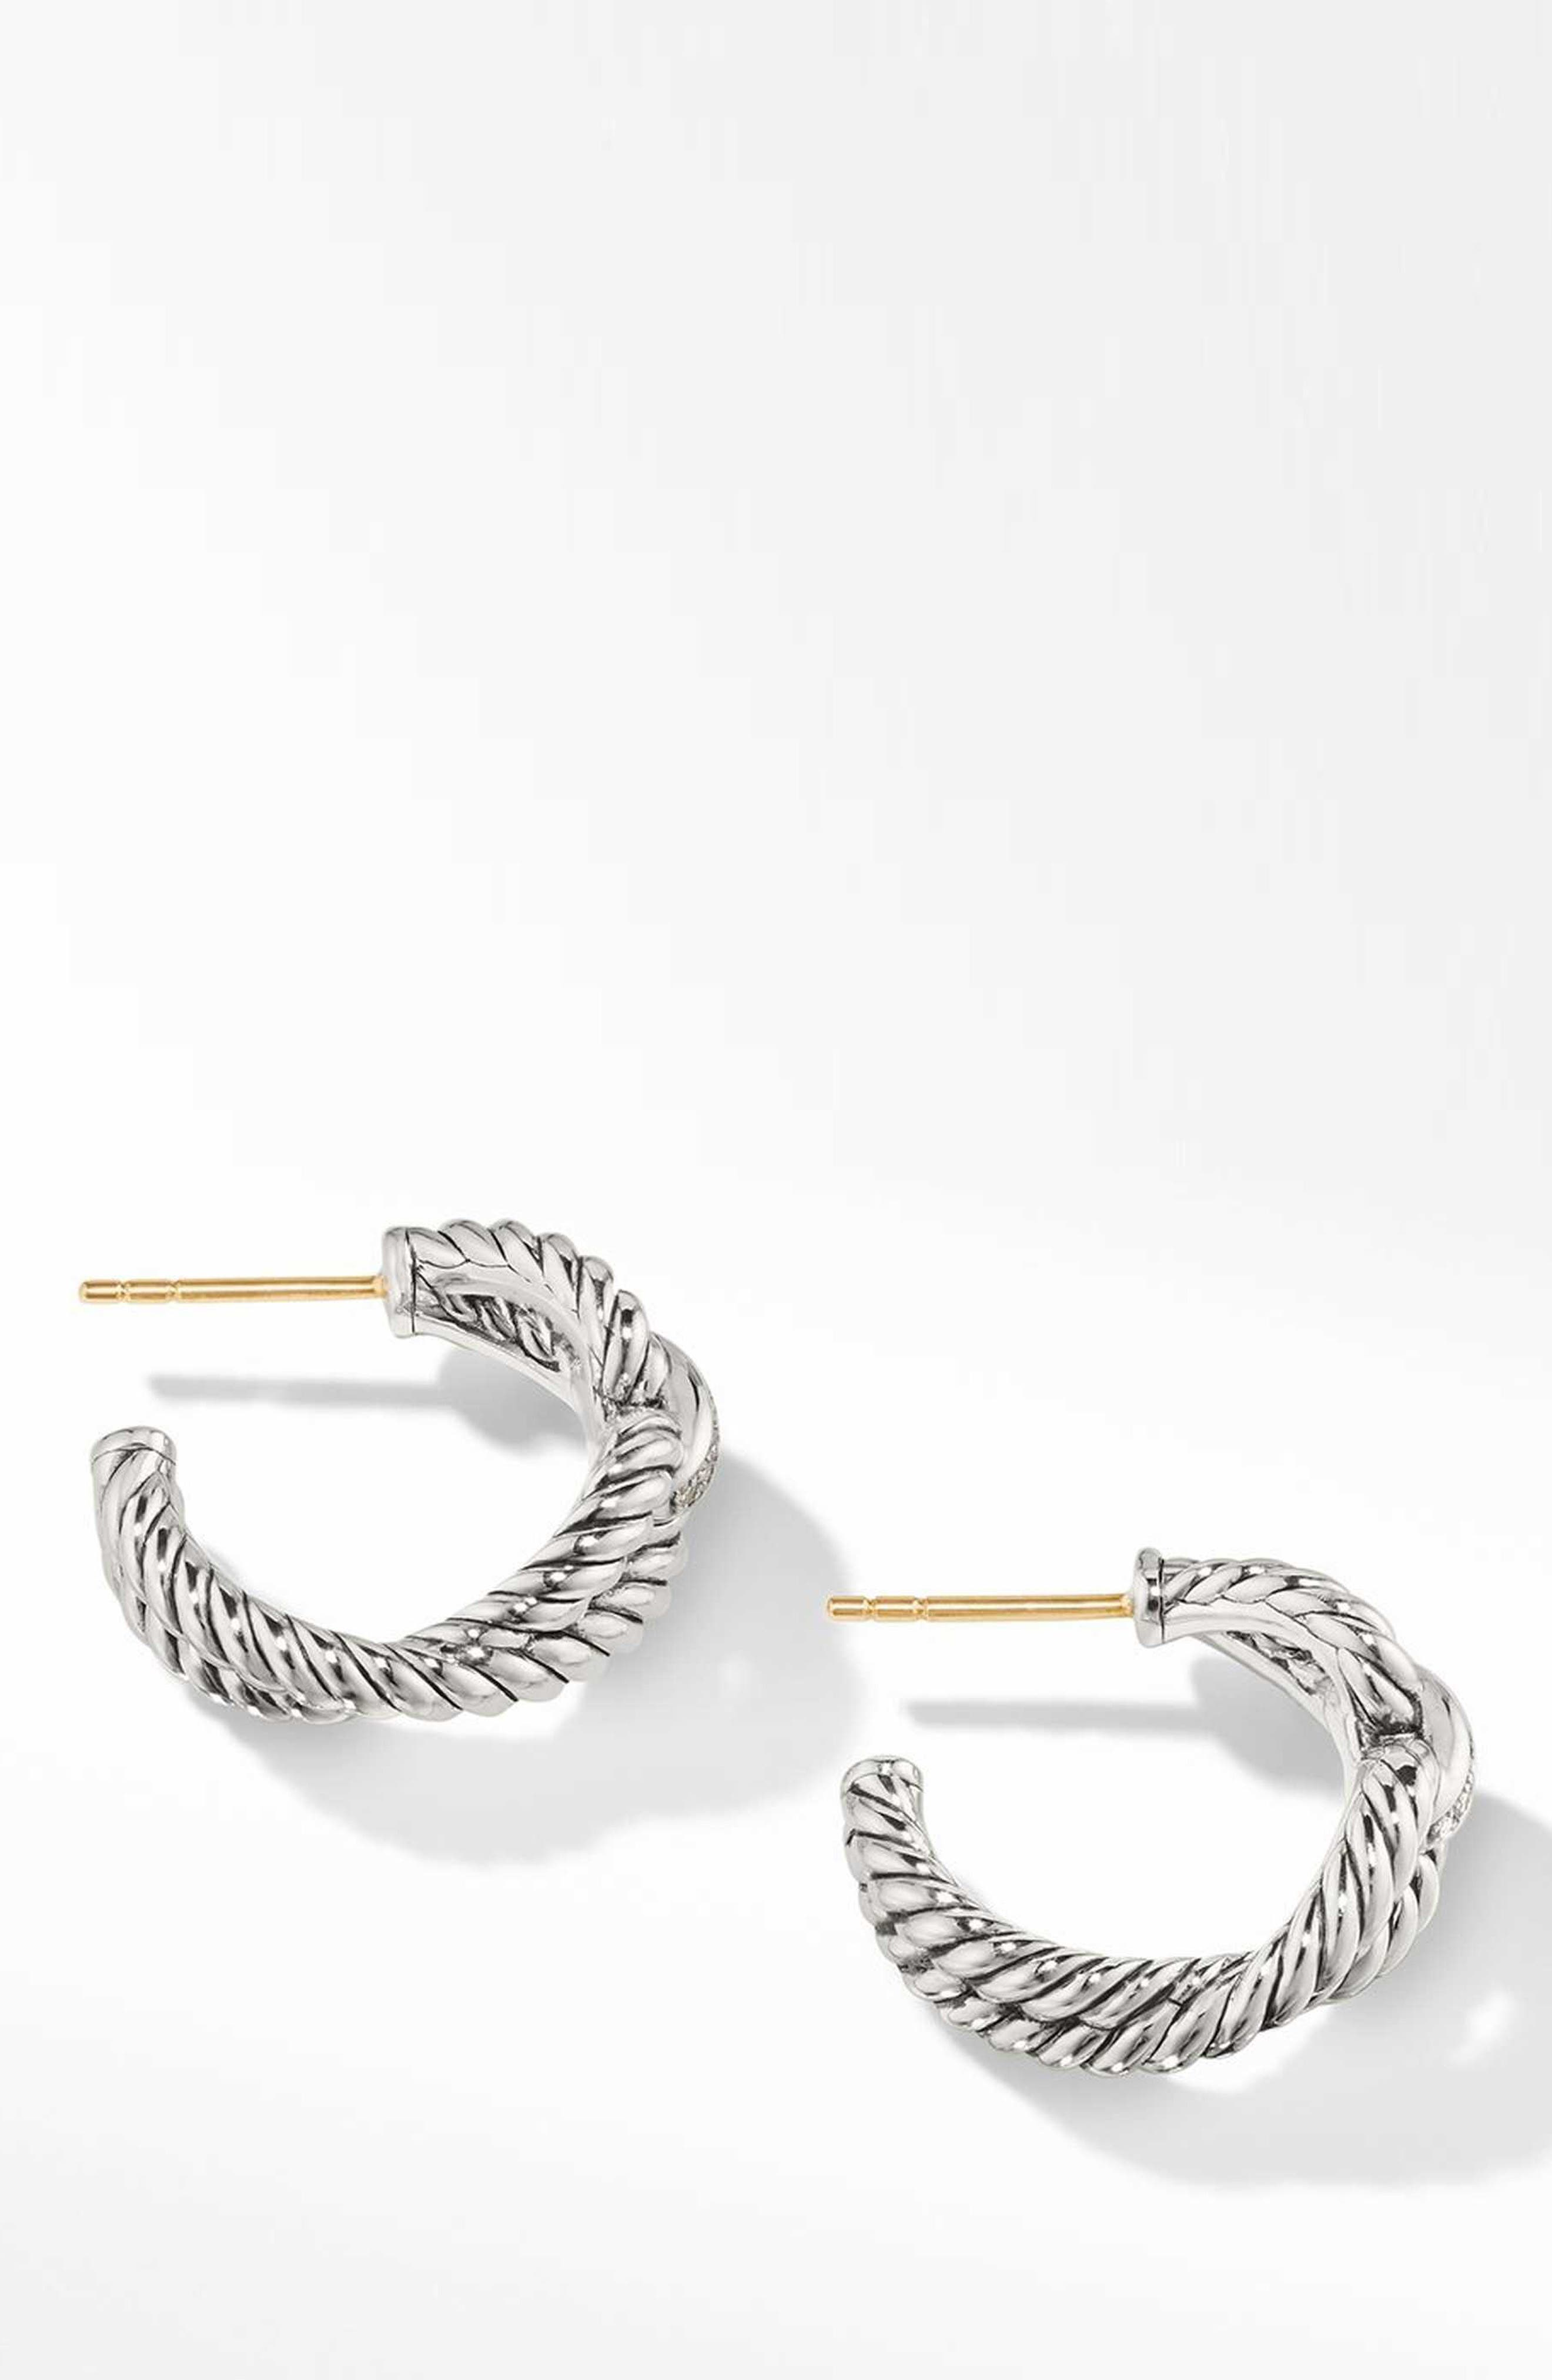 Cable Loop Hoop Earrings with Diamonds,                         Main,                         color, STERLING SILVER/ DIAMOND